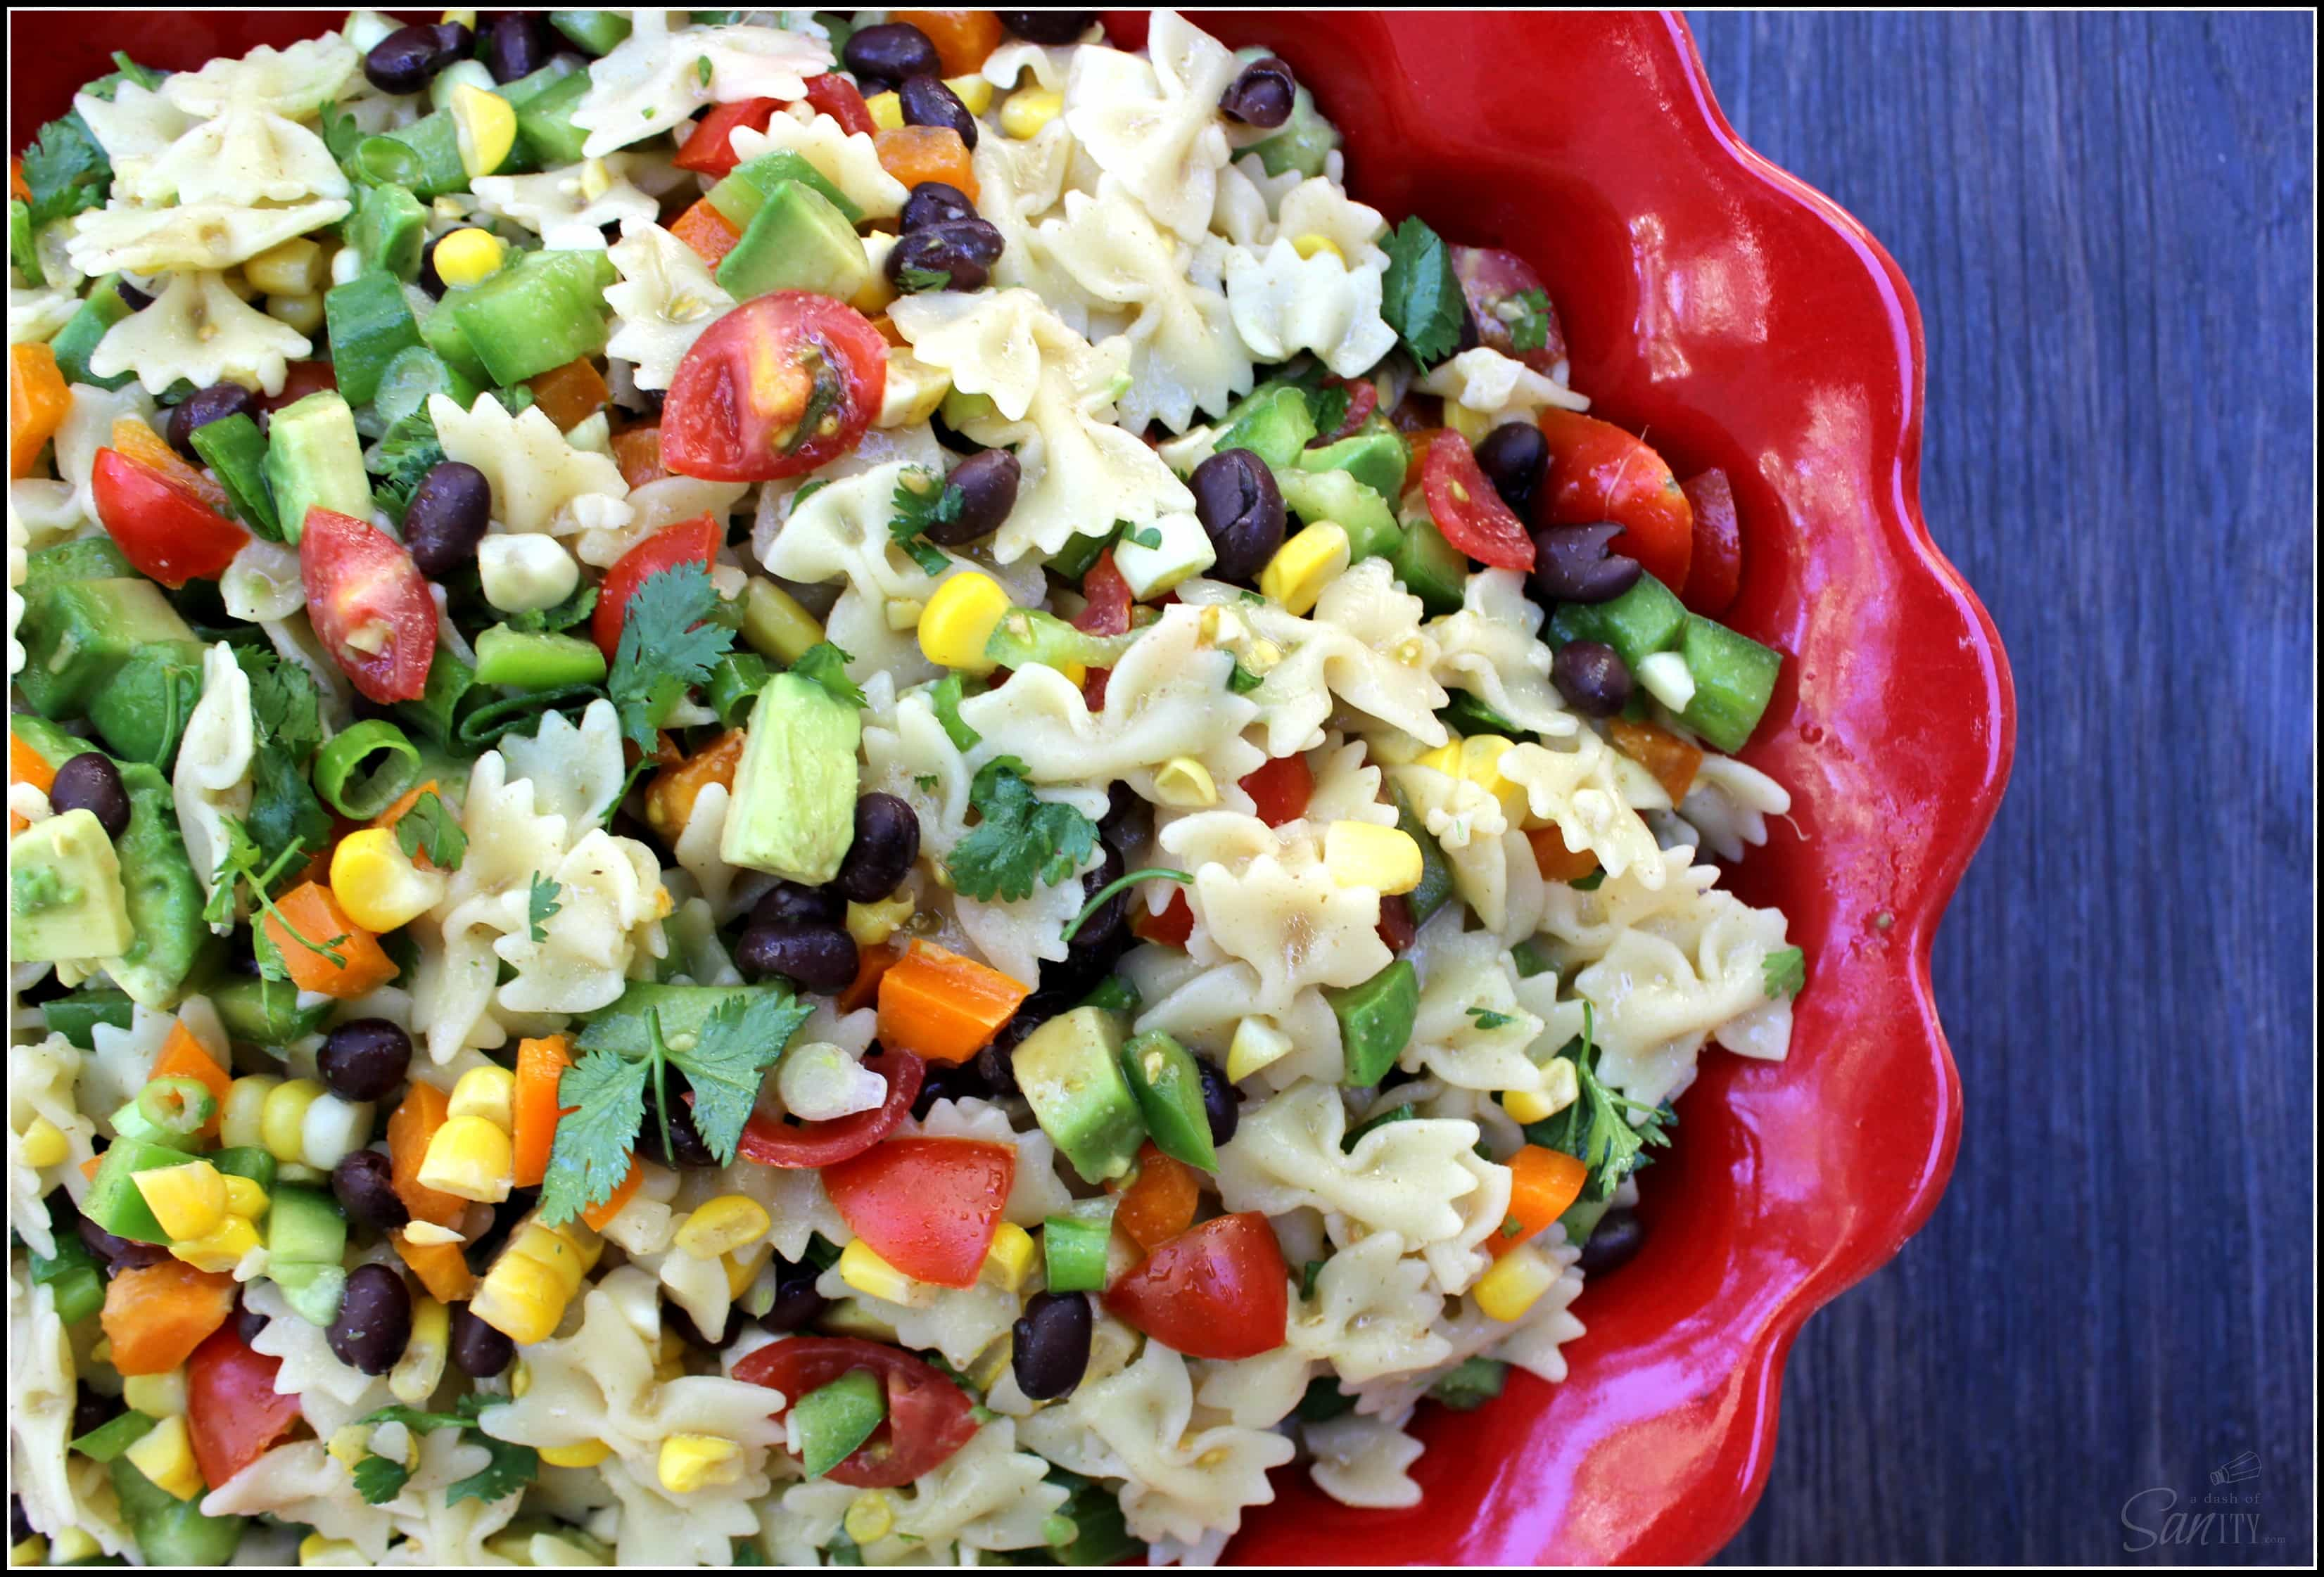 This Easy Southwestern Pasta Salad is light, refreshing, and delicious. Serve as a side dish or add grilled chicken to make this a perfect meal on its own.